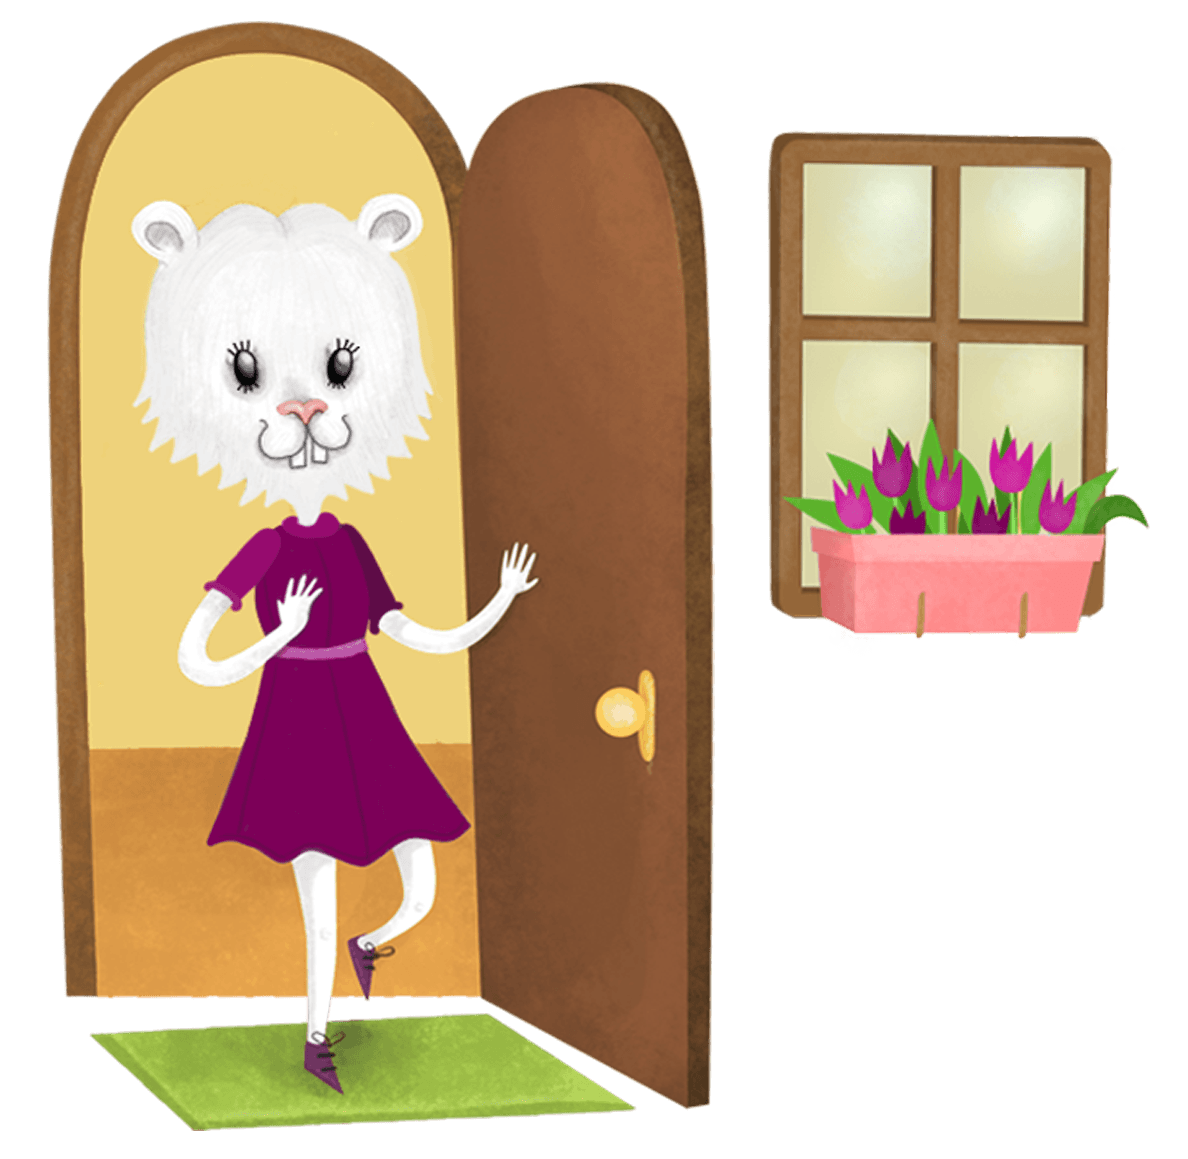 cartoon white bunny with purple dress on walking through a door